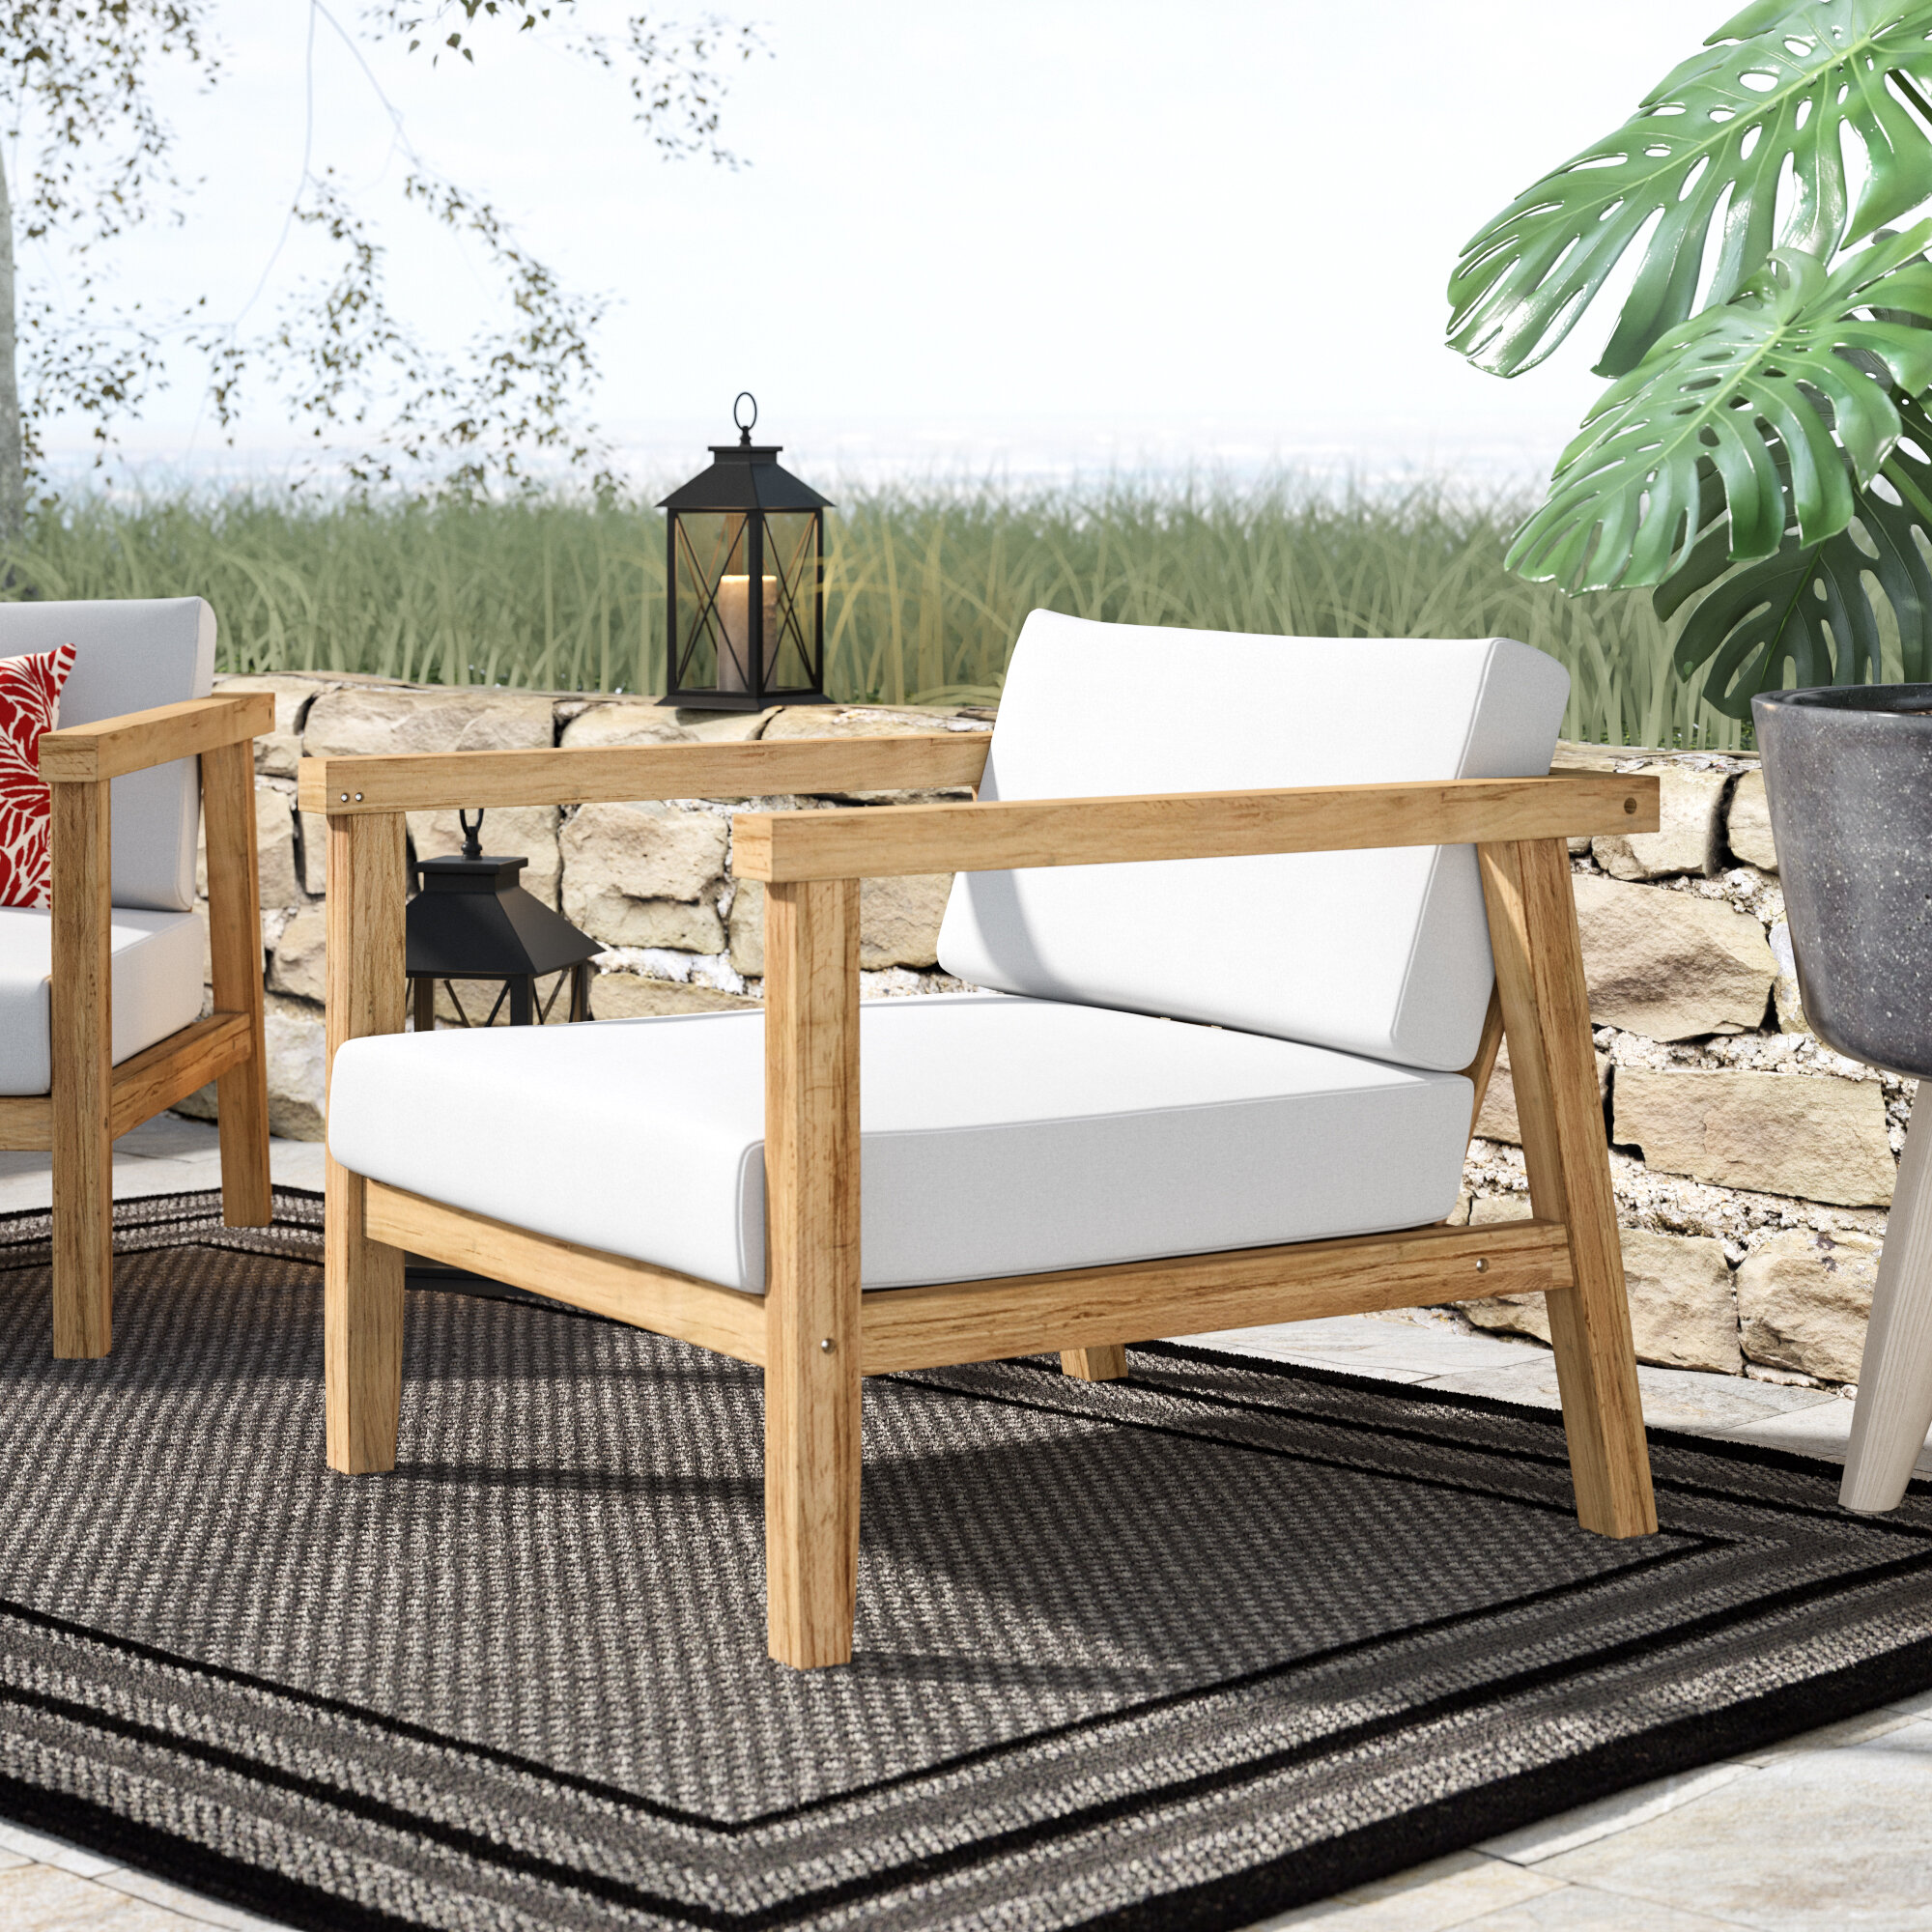 Bayou breeze edmeston outdoor teak chair with cushions reviews wayfair